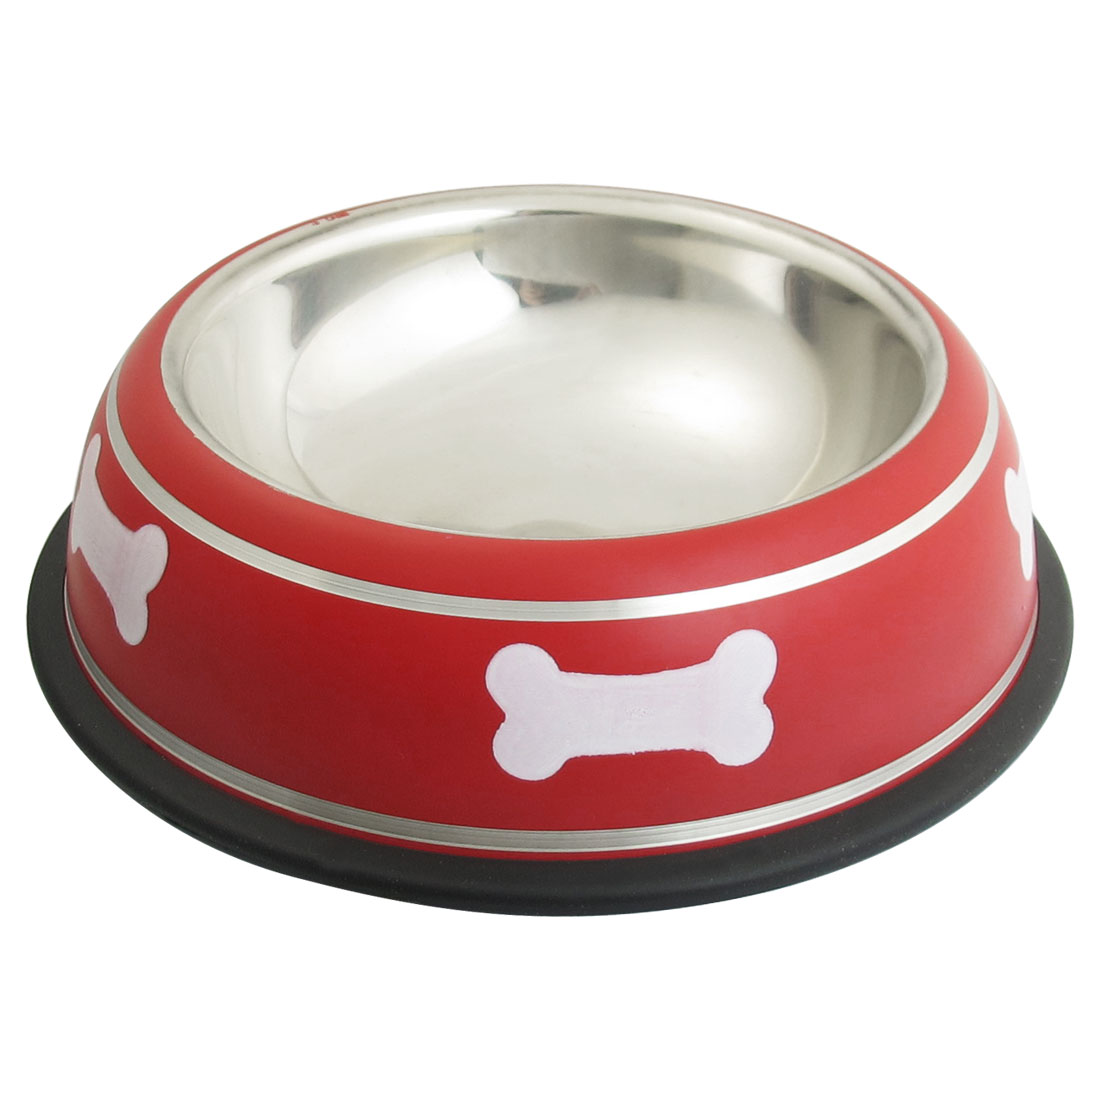 Stainless Steel Bone Print Nonslip Base Cat Pet Dog Feeding Feeder Water Food Bowl Red